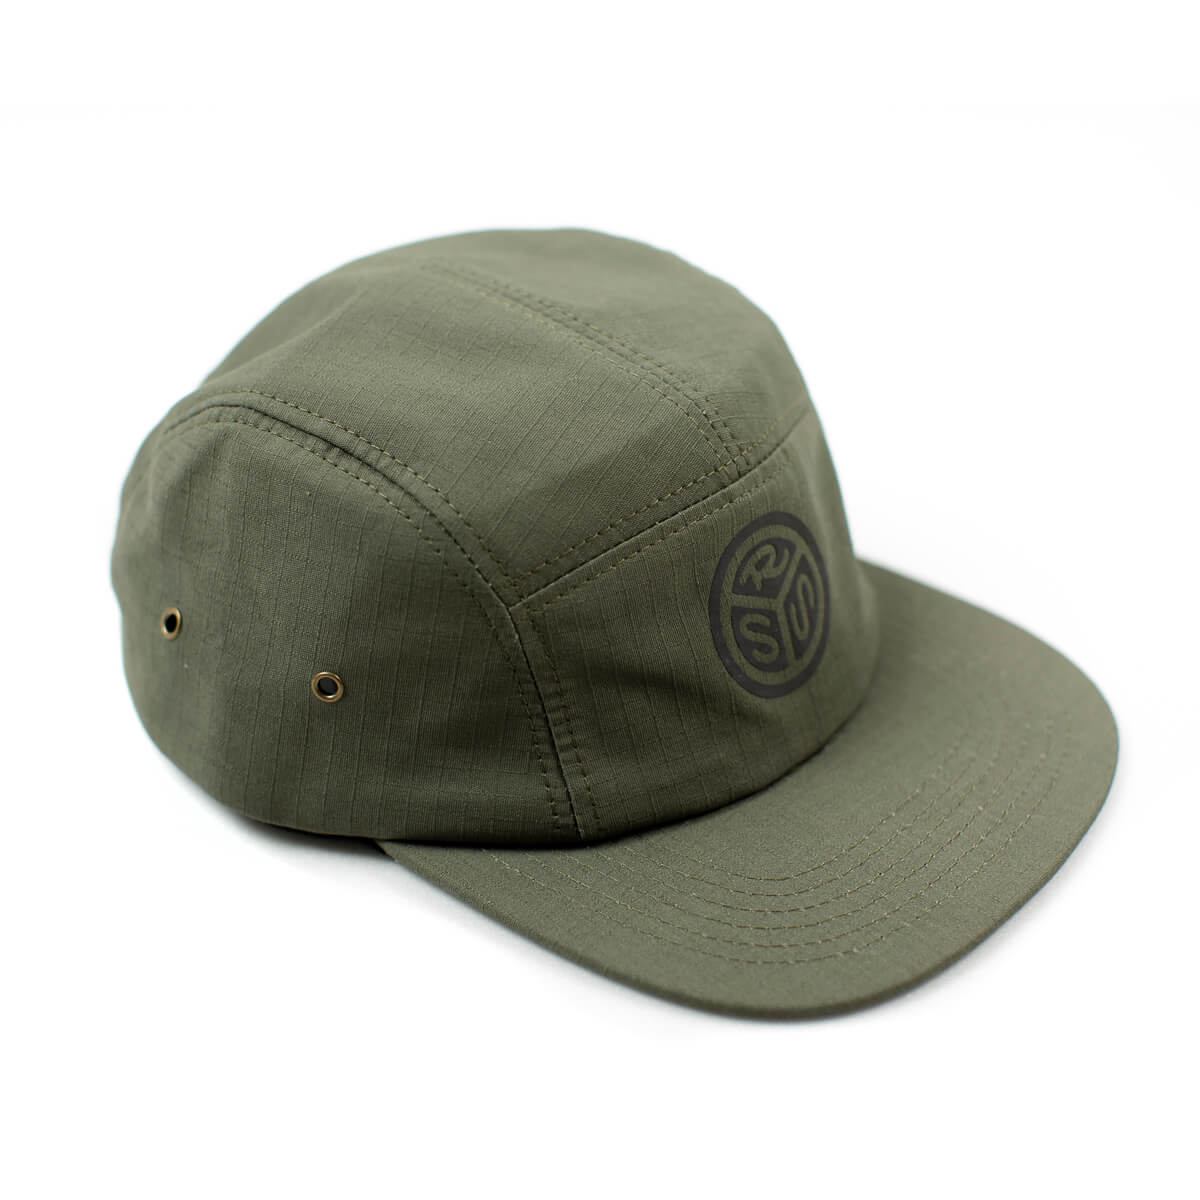 Rumble-5-Panel-Green-RSS_A3A9066-Edit